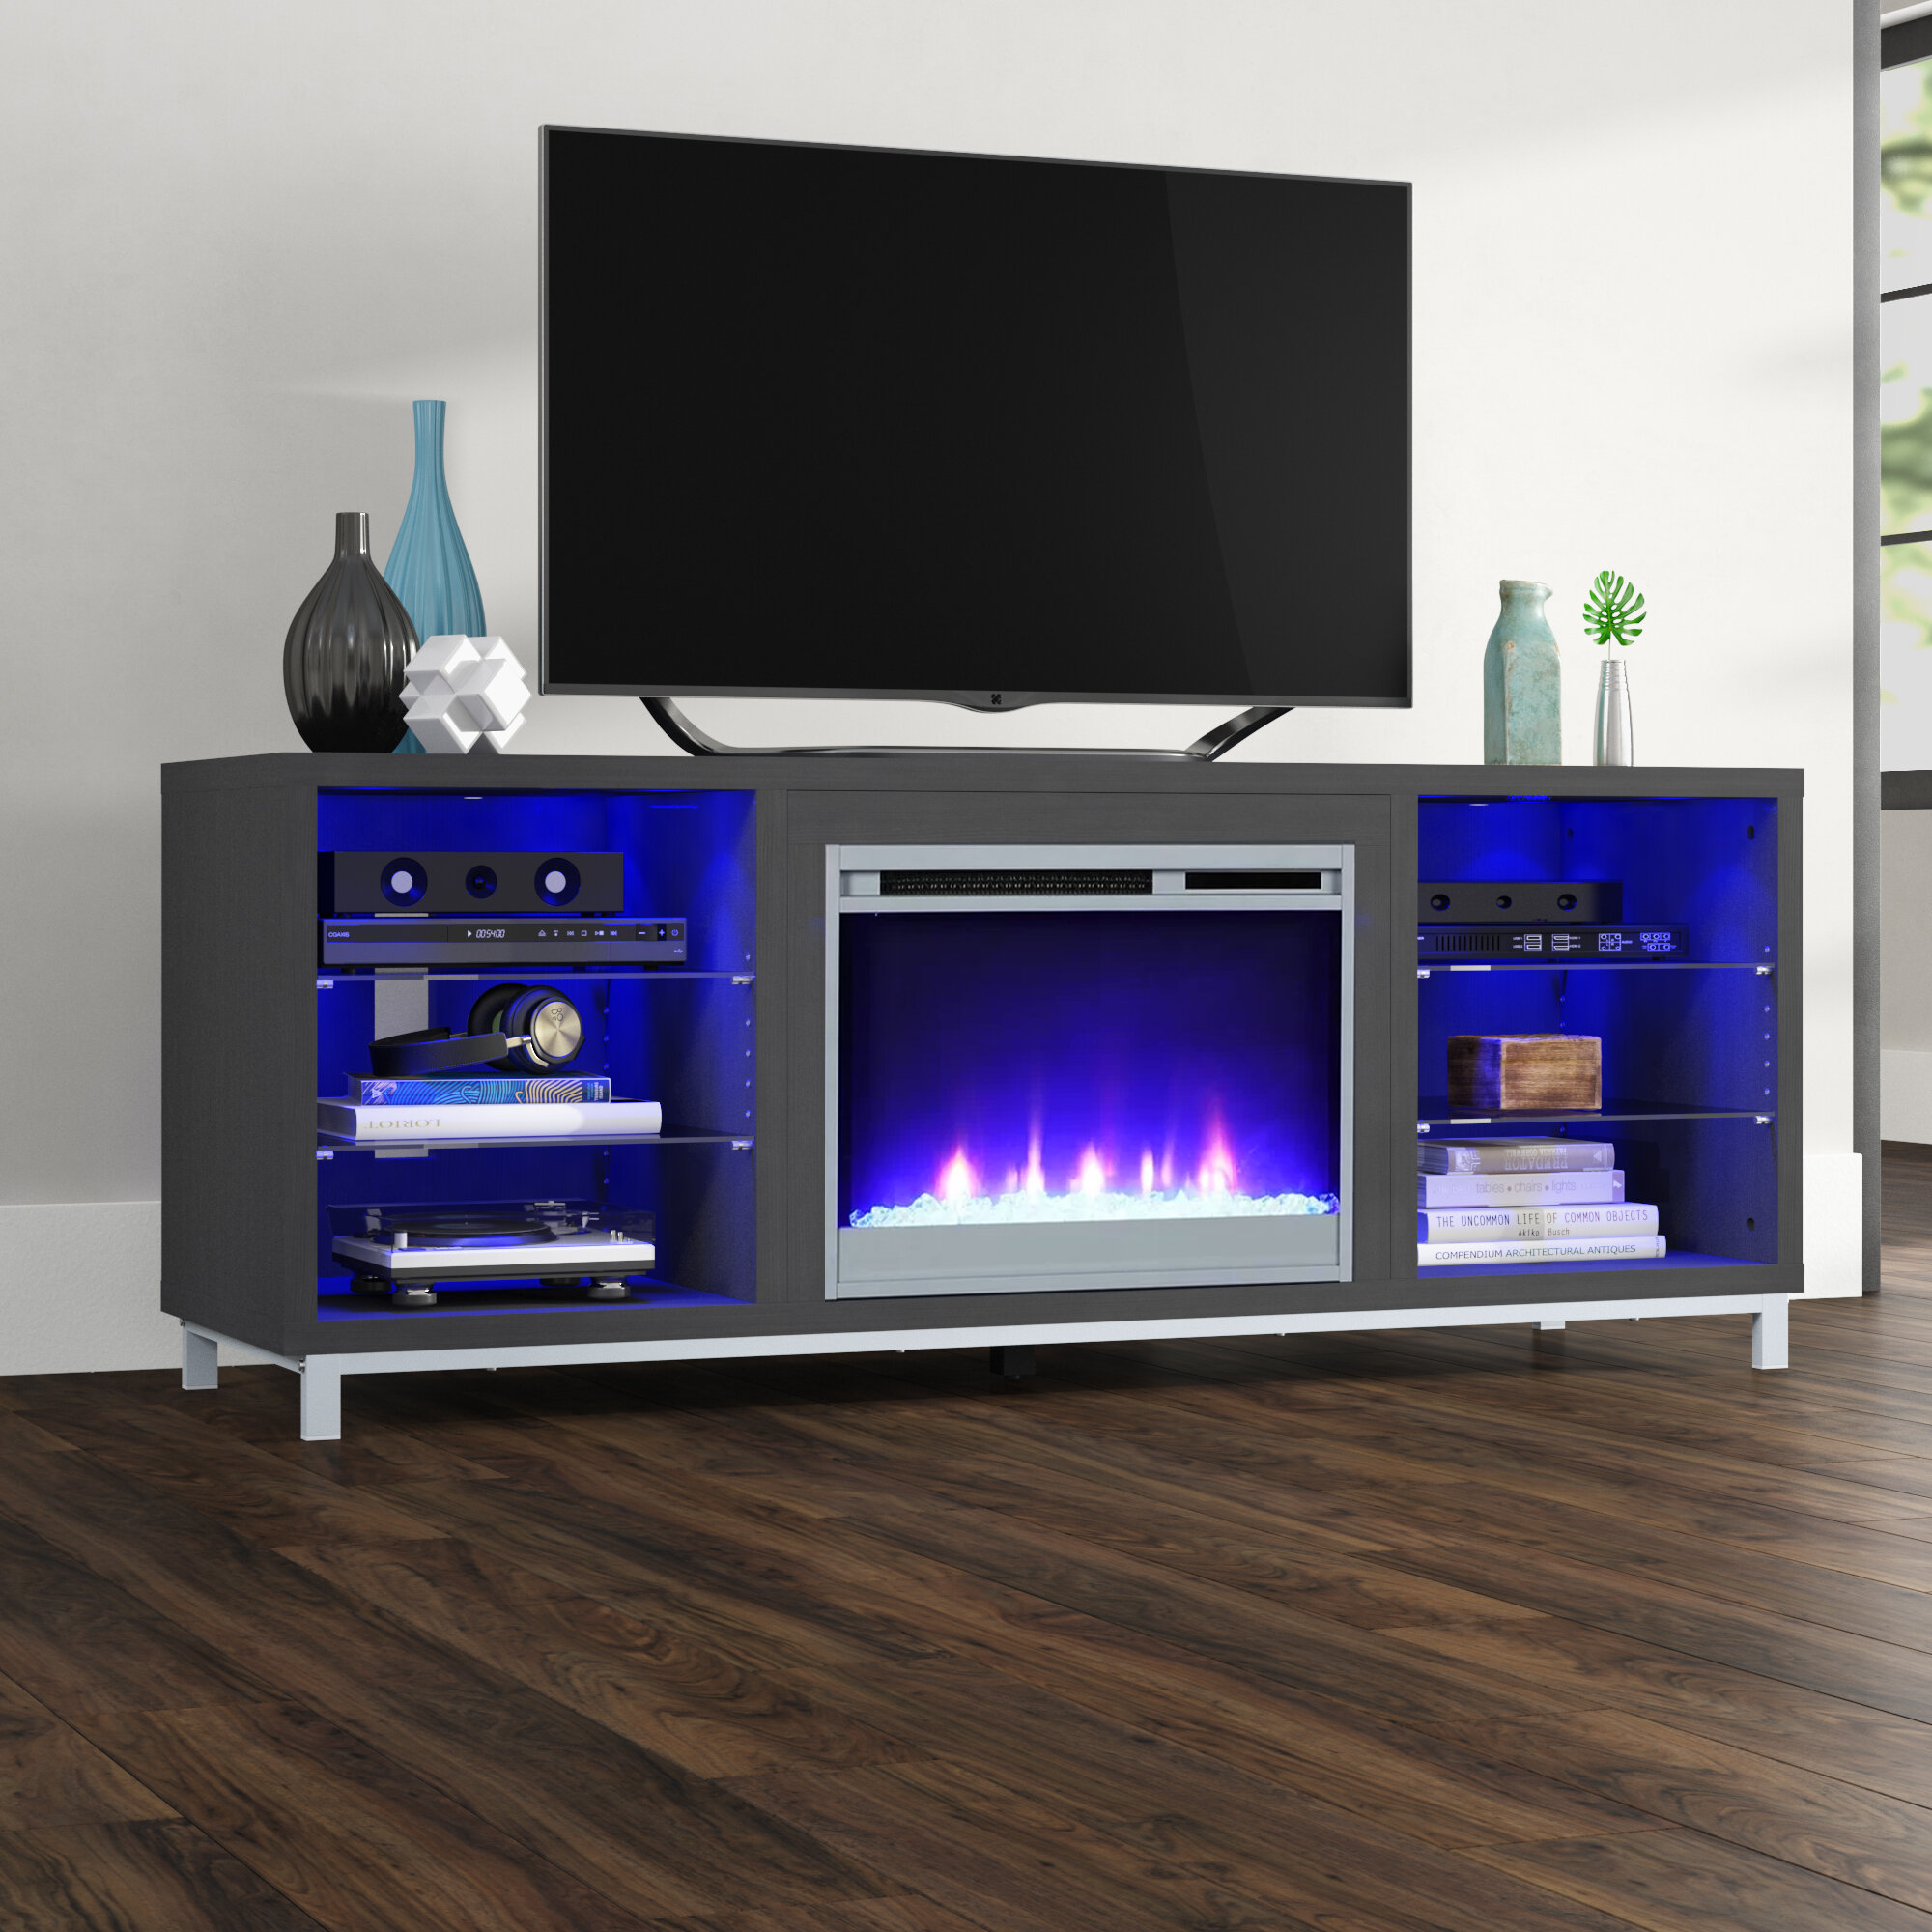 70 Inch Tv Stands Free Shipping Over 35 Wayfair